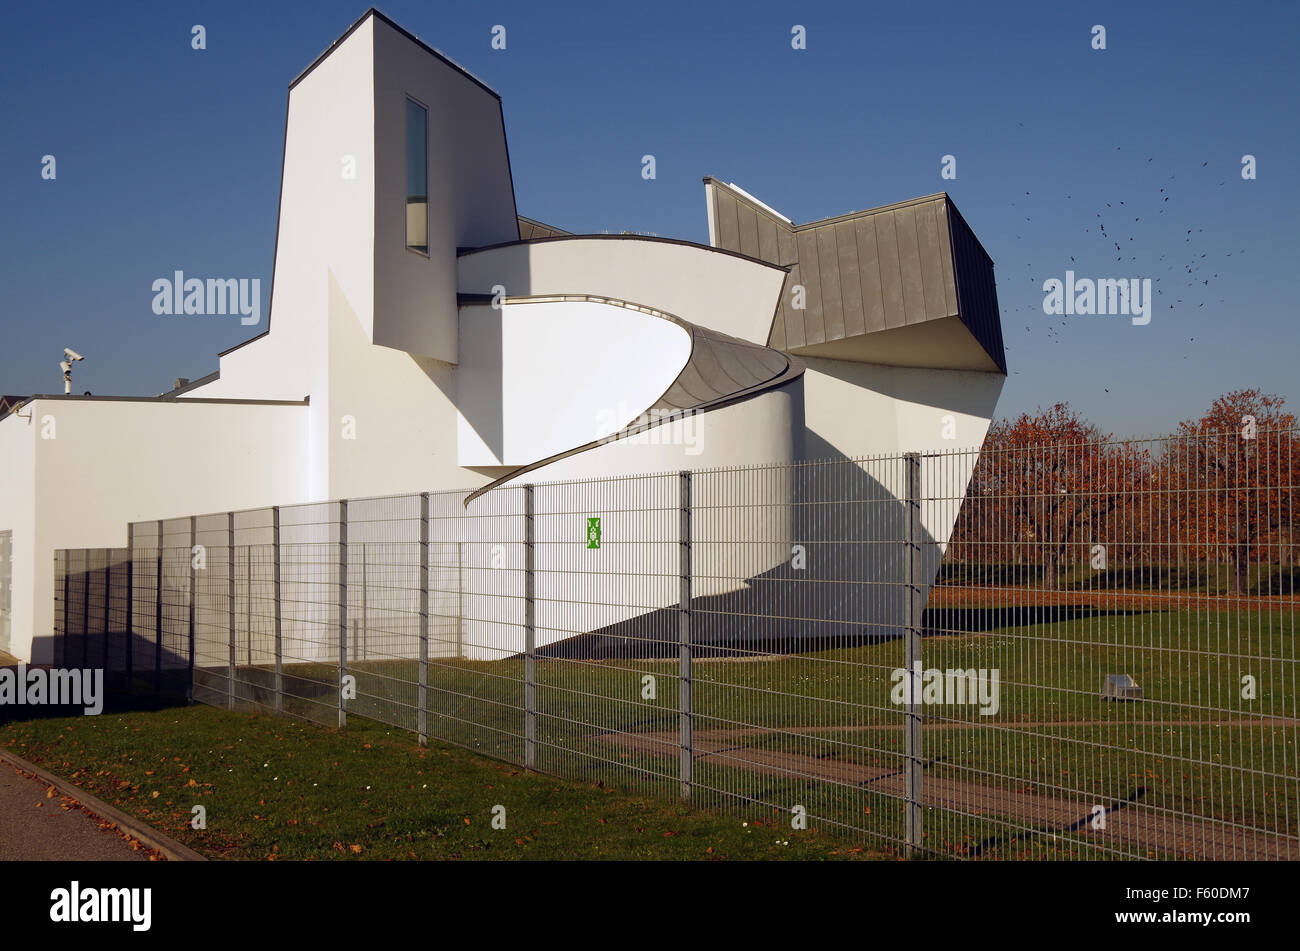 Vitra Design Museum Gallery Vitra Design Museum Gallery Gate Frank Gehry Stock Photo